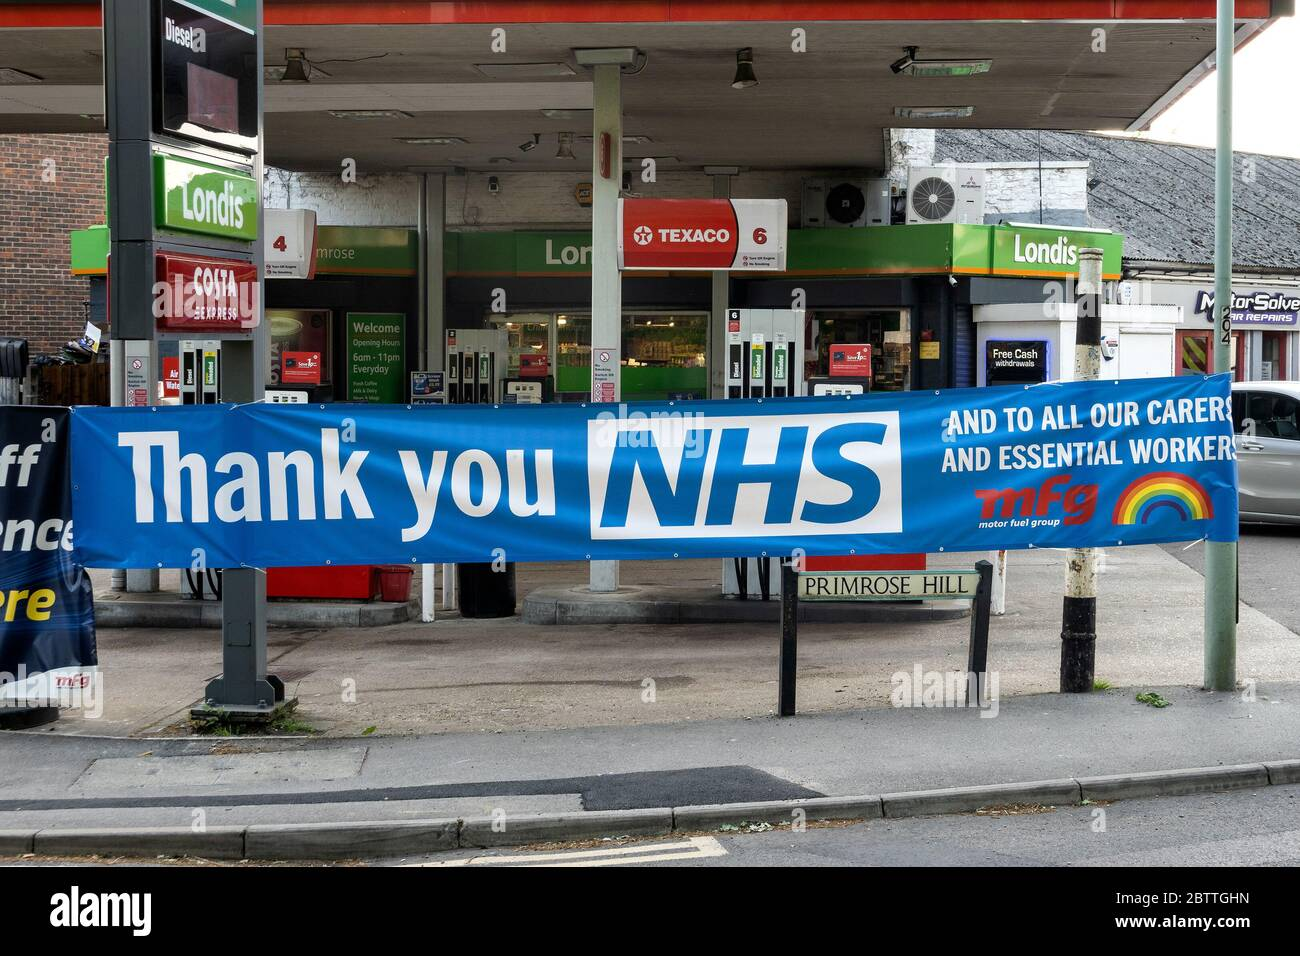 kings-langley-uk-filling-station-displaying-large-thank-you-nhs-banner-a-tribute-and-thanks-to-the-nhs-carers-and-essential-workers-during-the-coronavirus-pandemic-lockdown-and-fight-against-covid-19-supplied-by-the-motor-fuel-group-credit-stephen-bellalamy-2BTTGHN.jpg